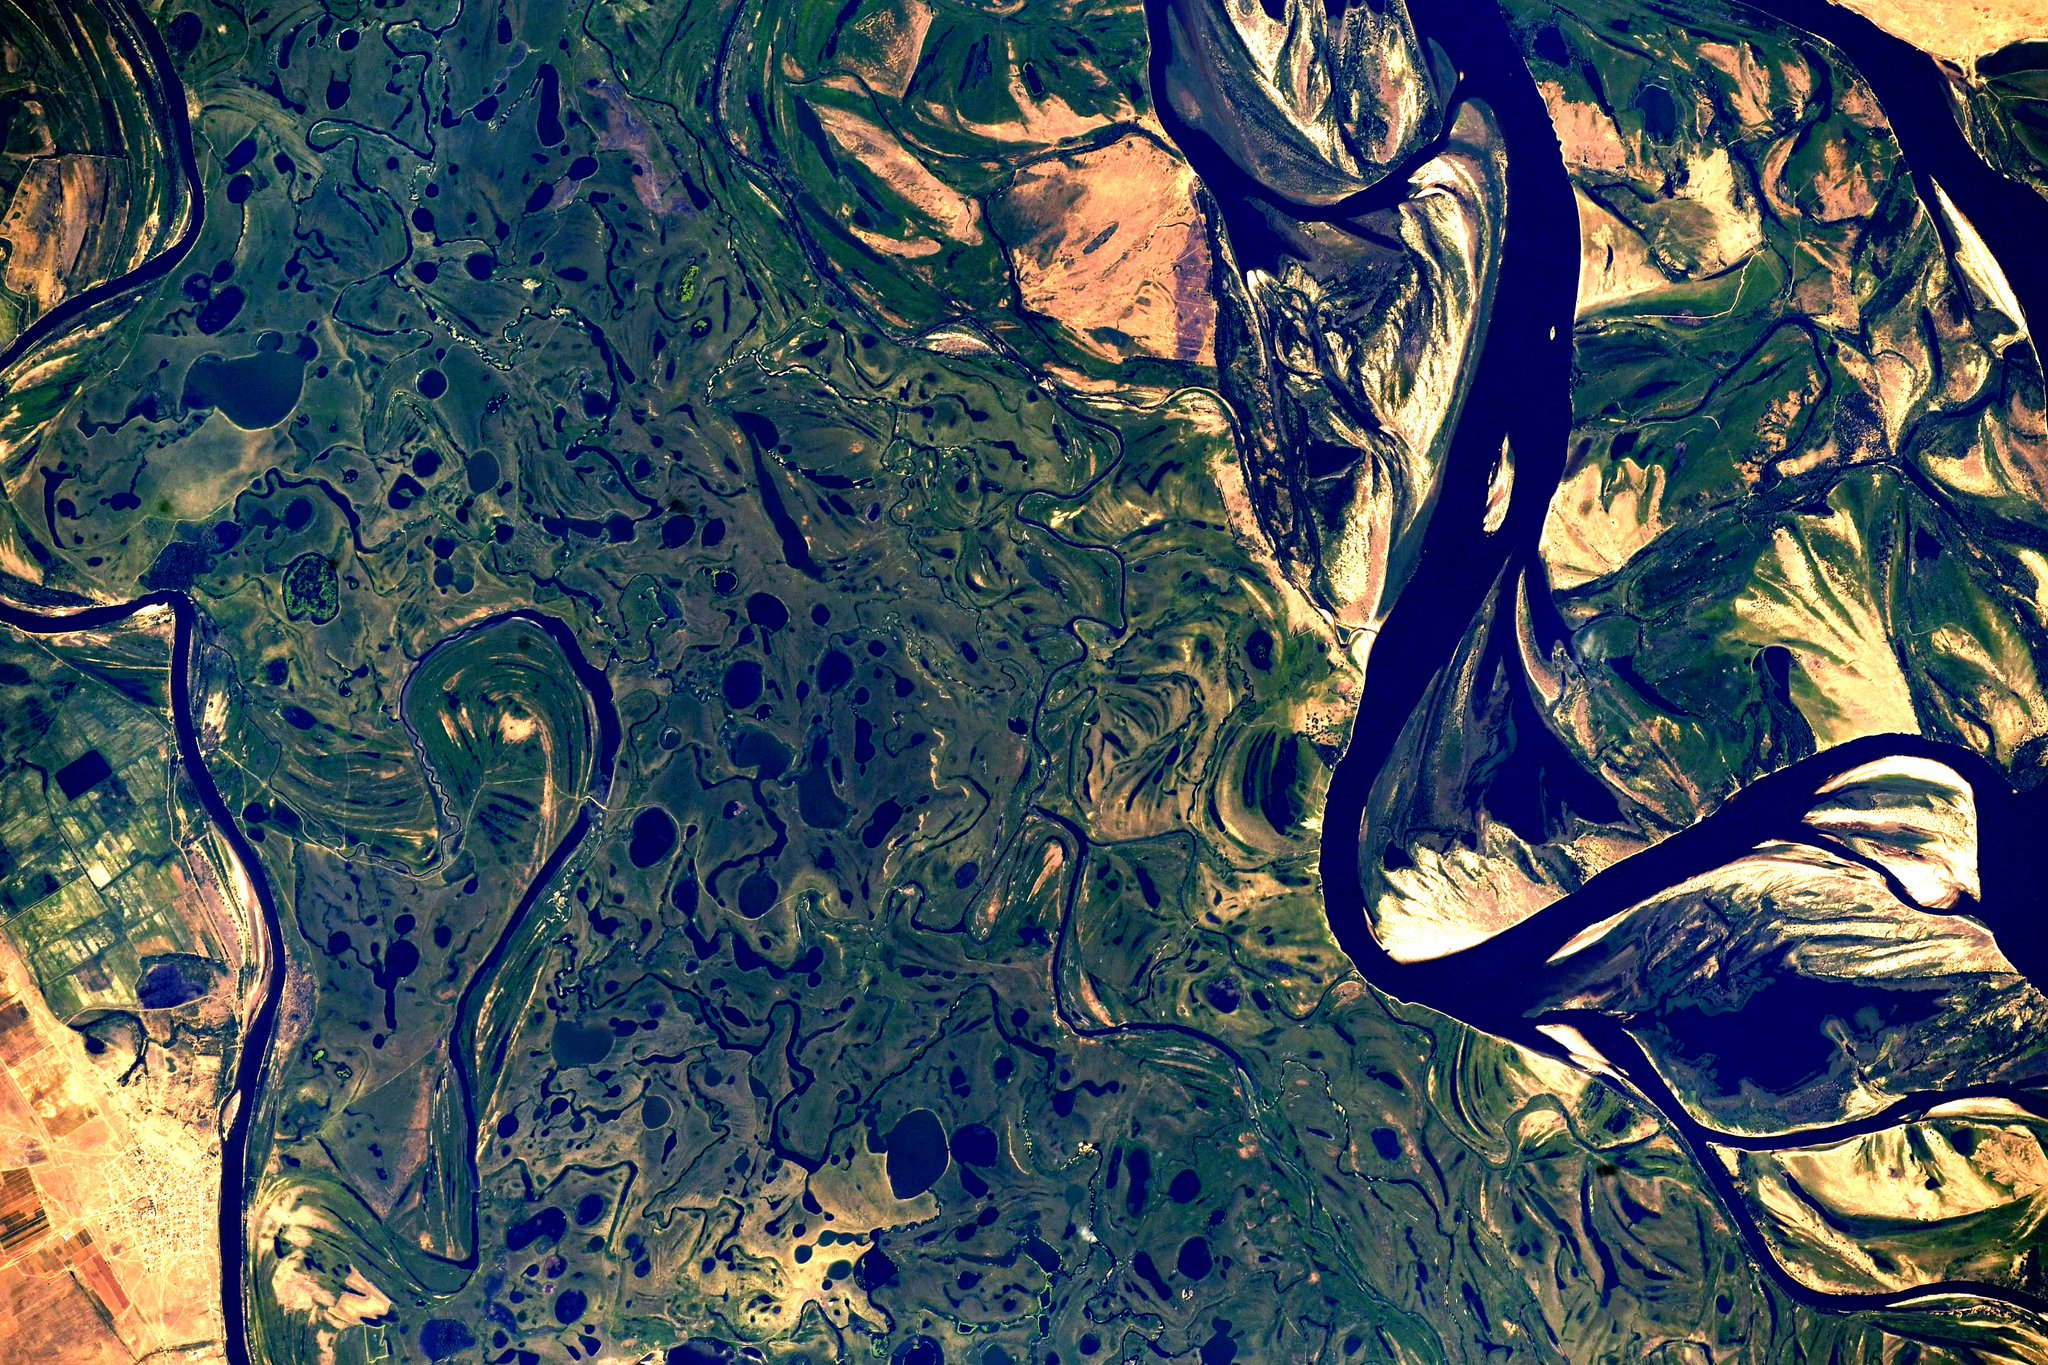 Hard to make these beautiful images up: this is the Volga River delta near Astrakhan before spilling into the Caspian Sea. This is Europe's largest river delta. I took some liberty with color editing but the image is beautiful from @Space_Station. #EarthArt (Photo & Caption: Ricky Arnold / NASA)